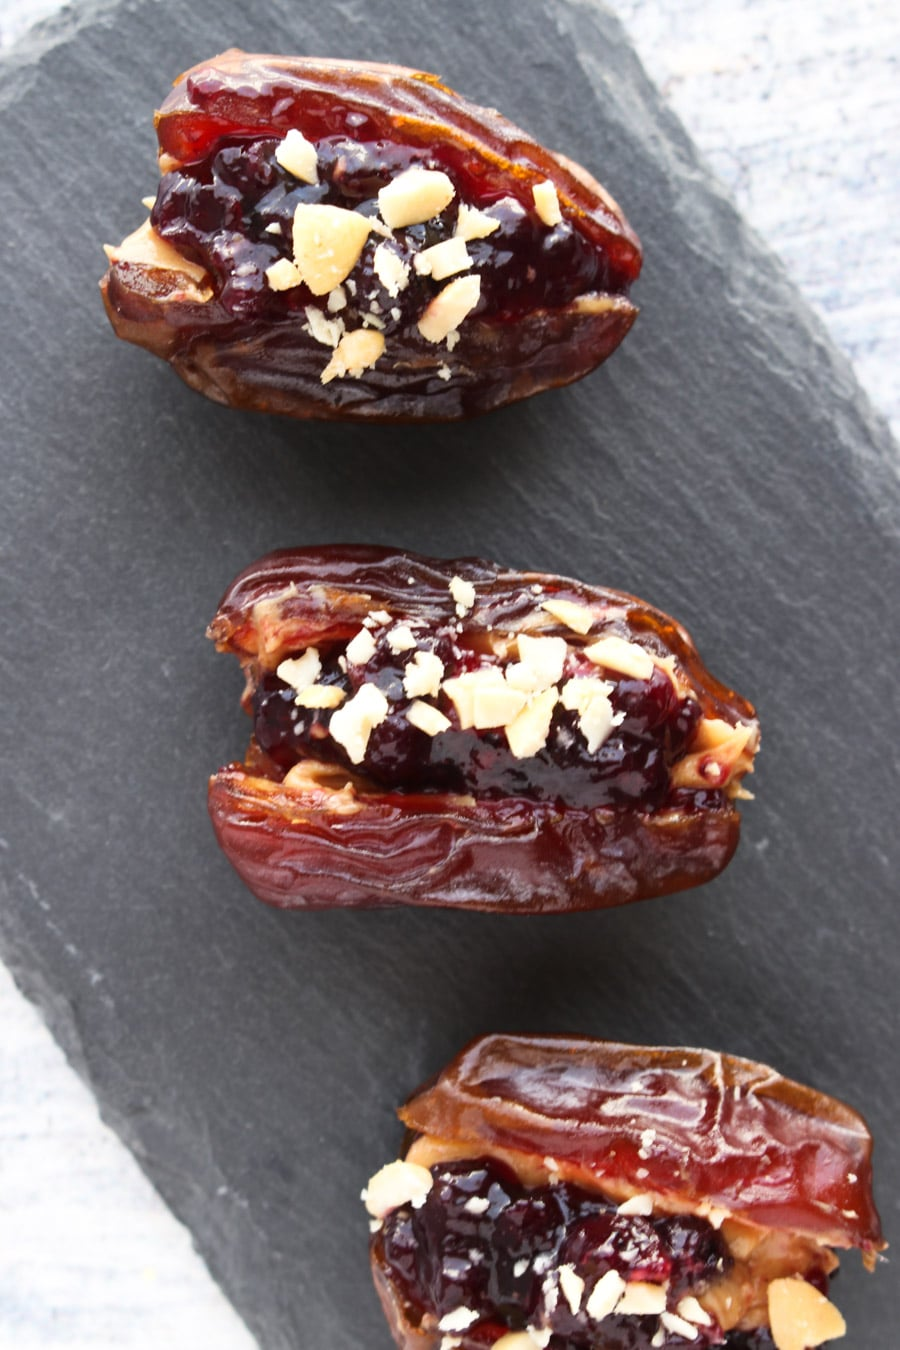 3 Peanut butter and jelly stuffed dates on a tray